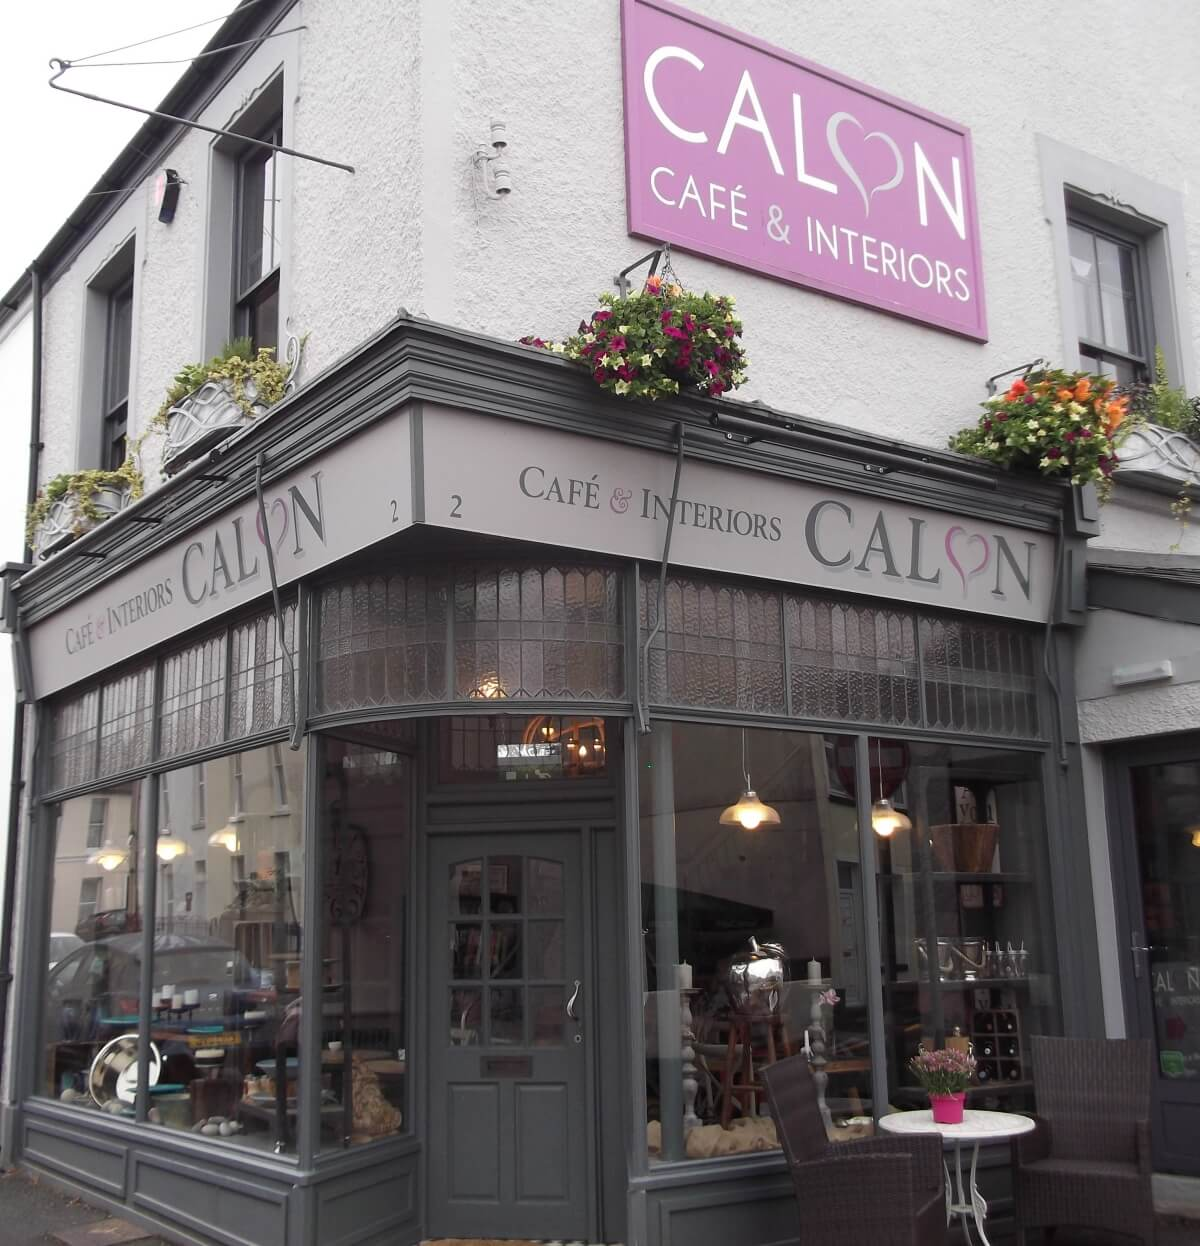 Carmarthen Signs for Calon Cafe